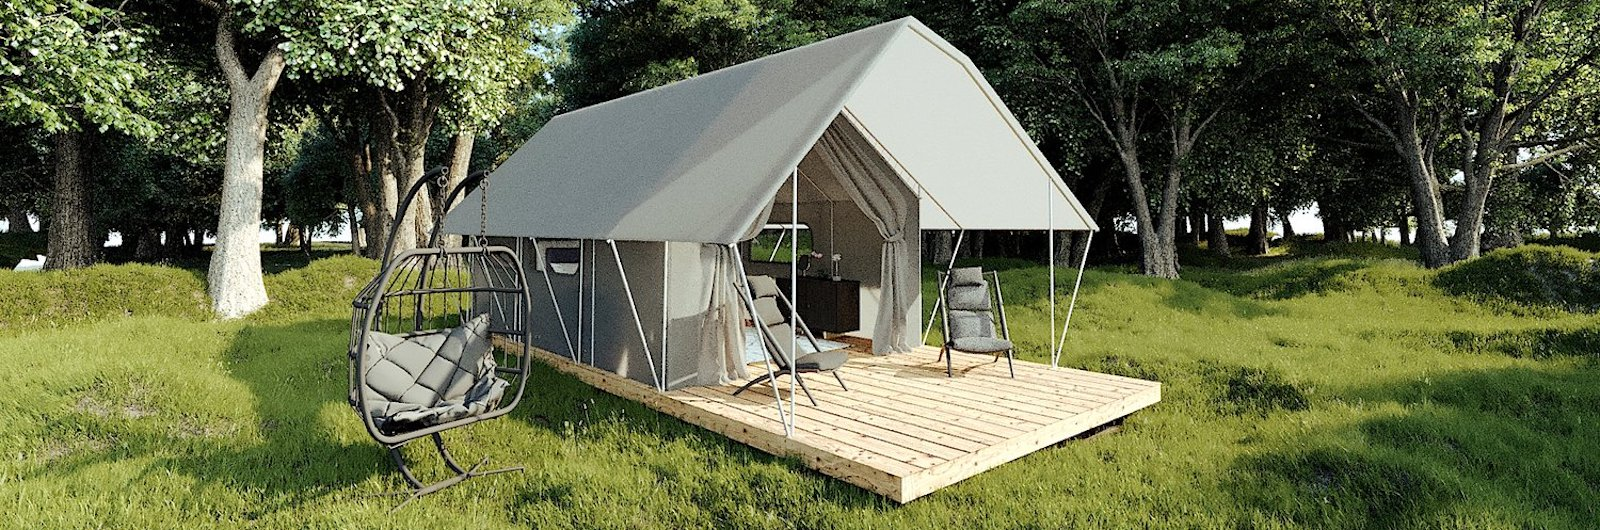 A Fully-Furnished Luxury Tent for Your Backyard. Or Wherever.